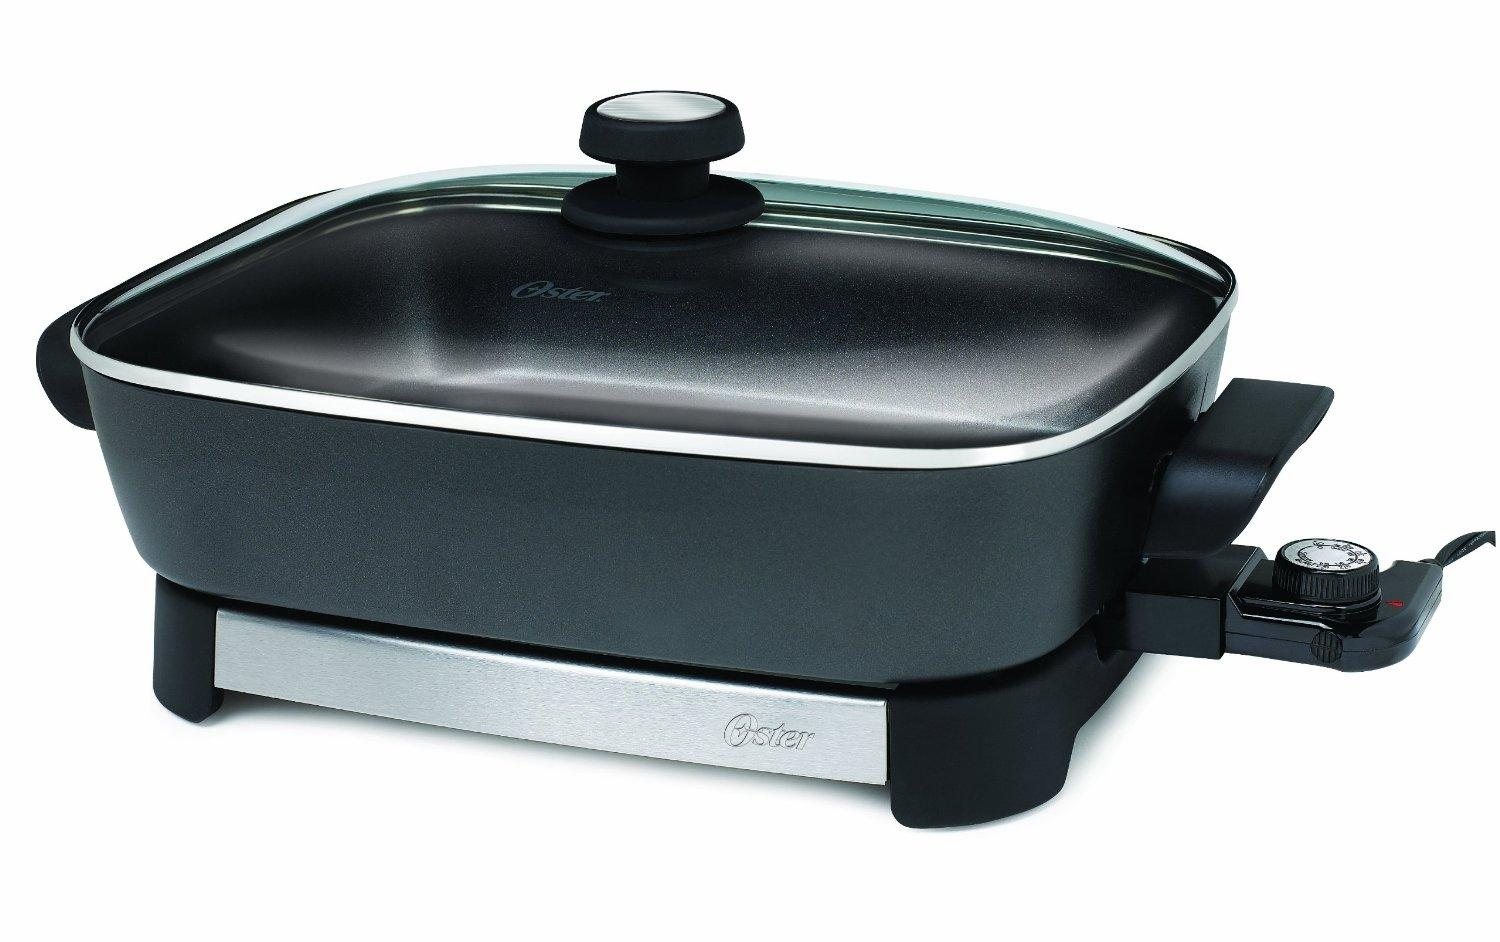 Discounted Oster Small Appliances